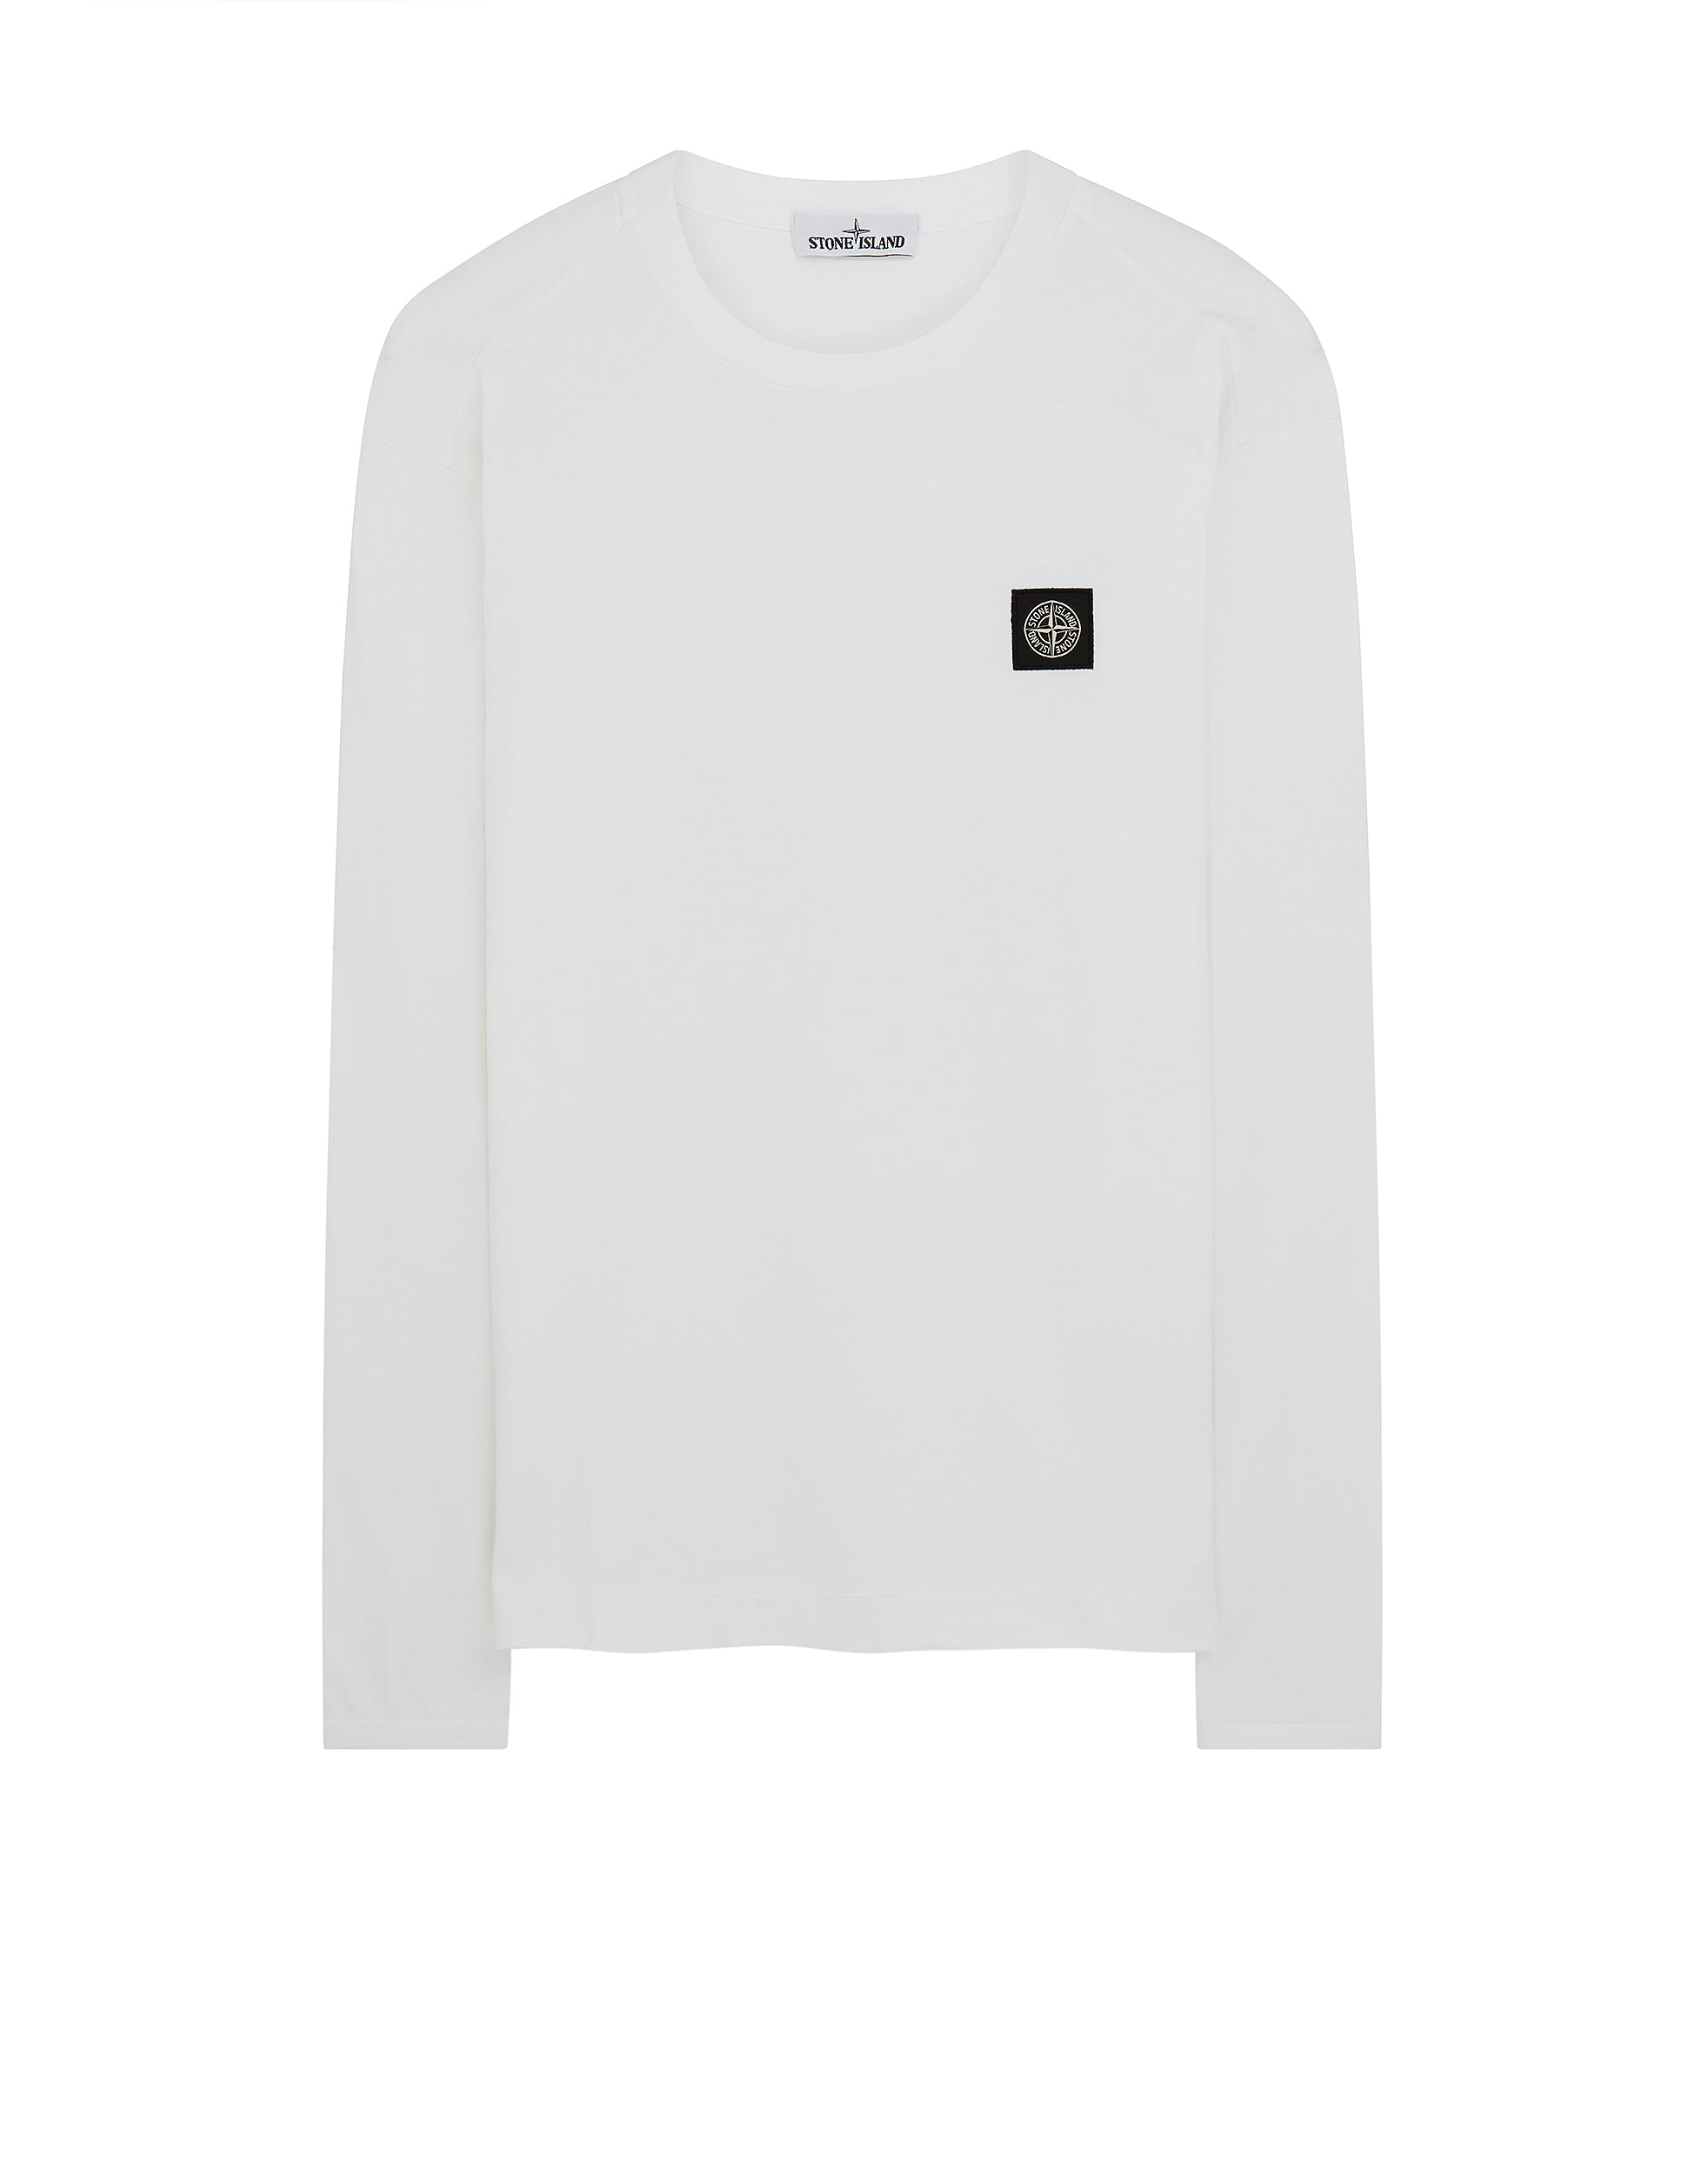 24041 Long Sleeve T-Shirt in White